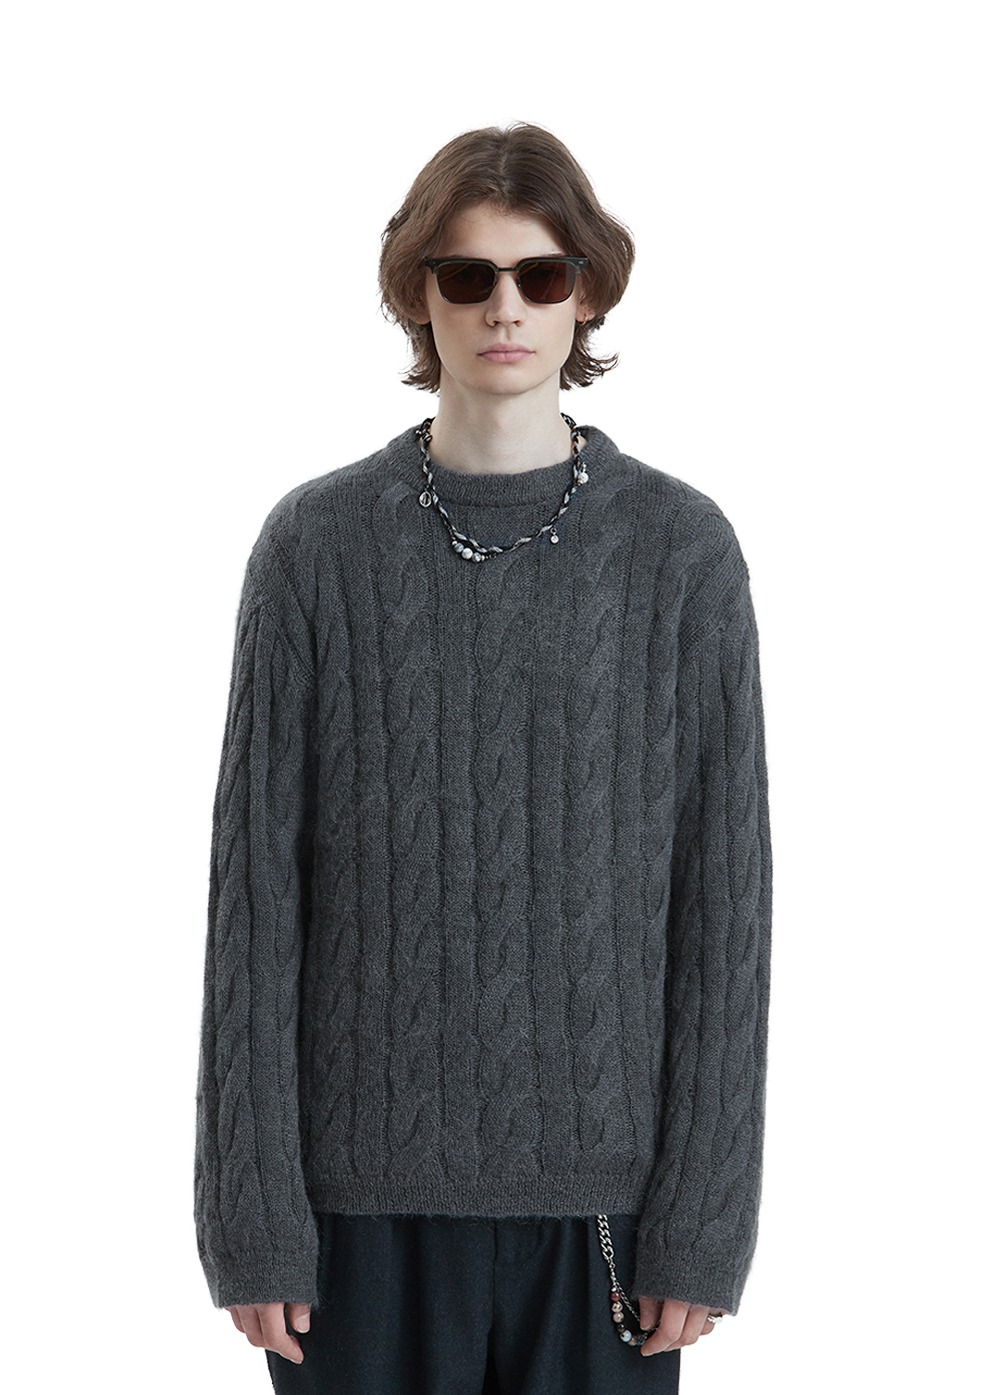 LIFUL KID MOHAIR CABLE KNIT SWEATER charcoal